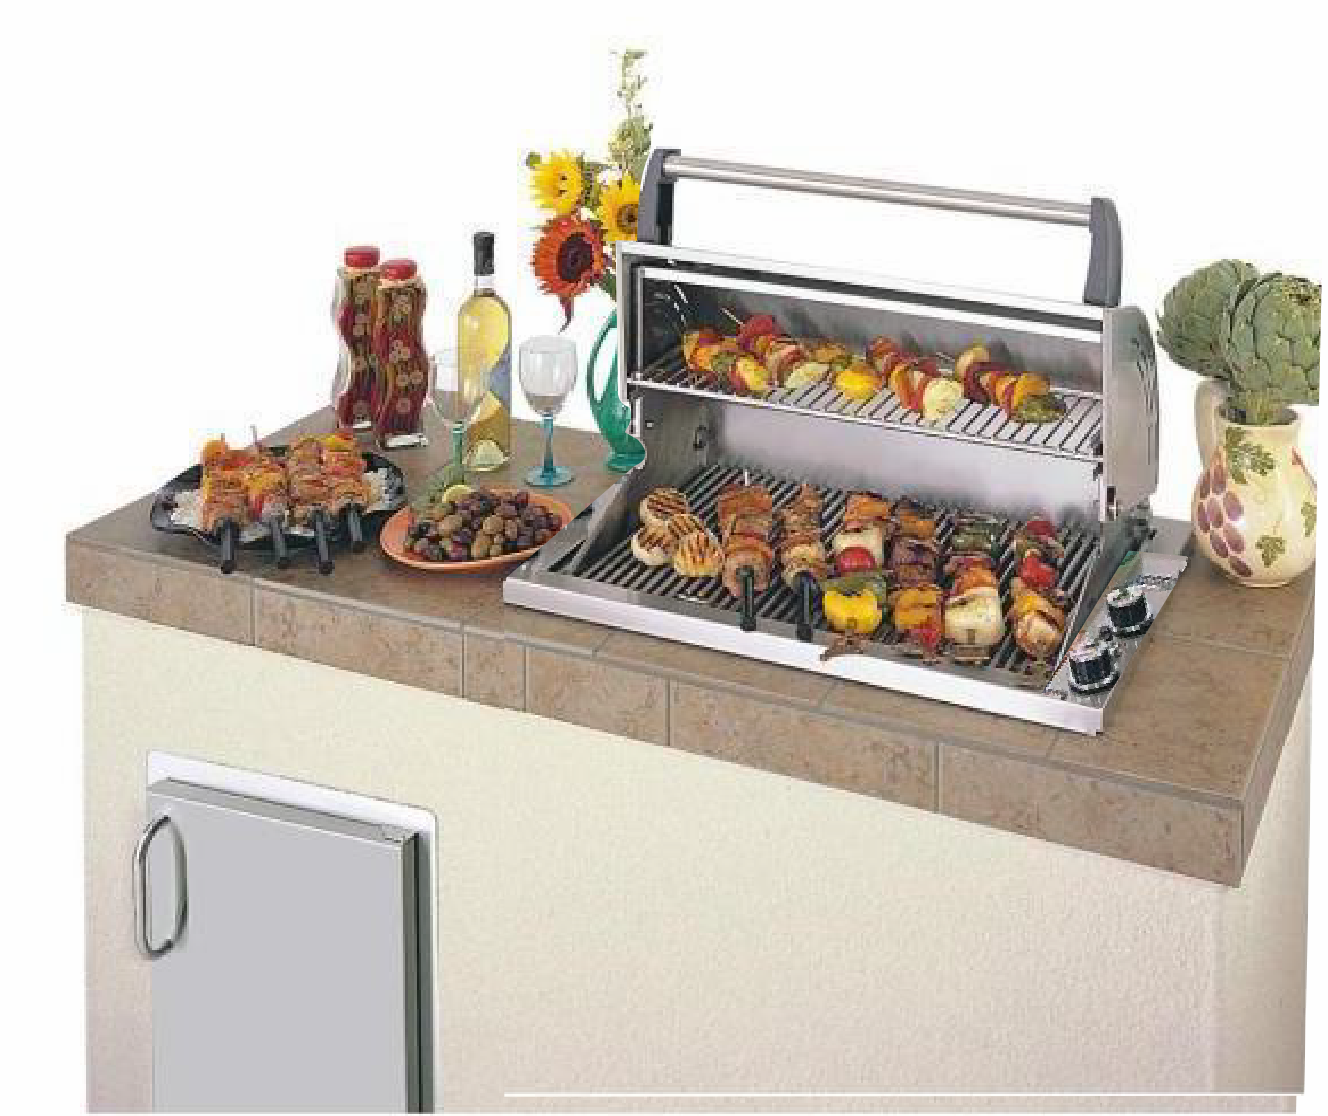 Fire Magic Deluxe countertop grill drop in 3C-S1S1N-A